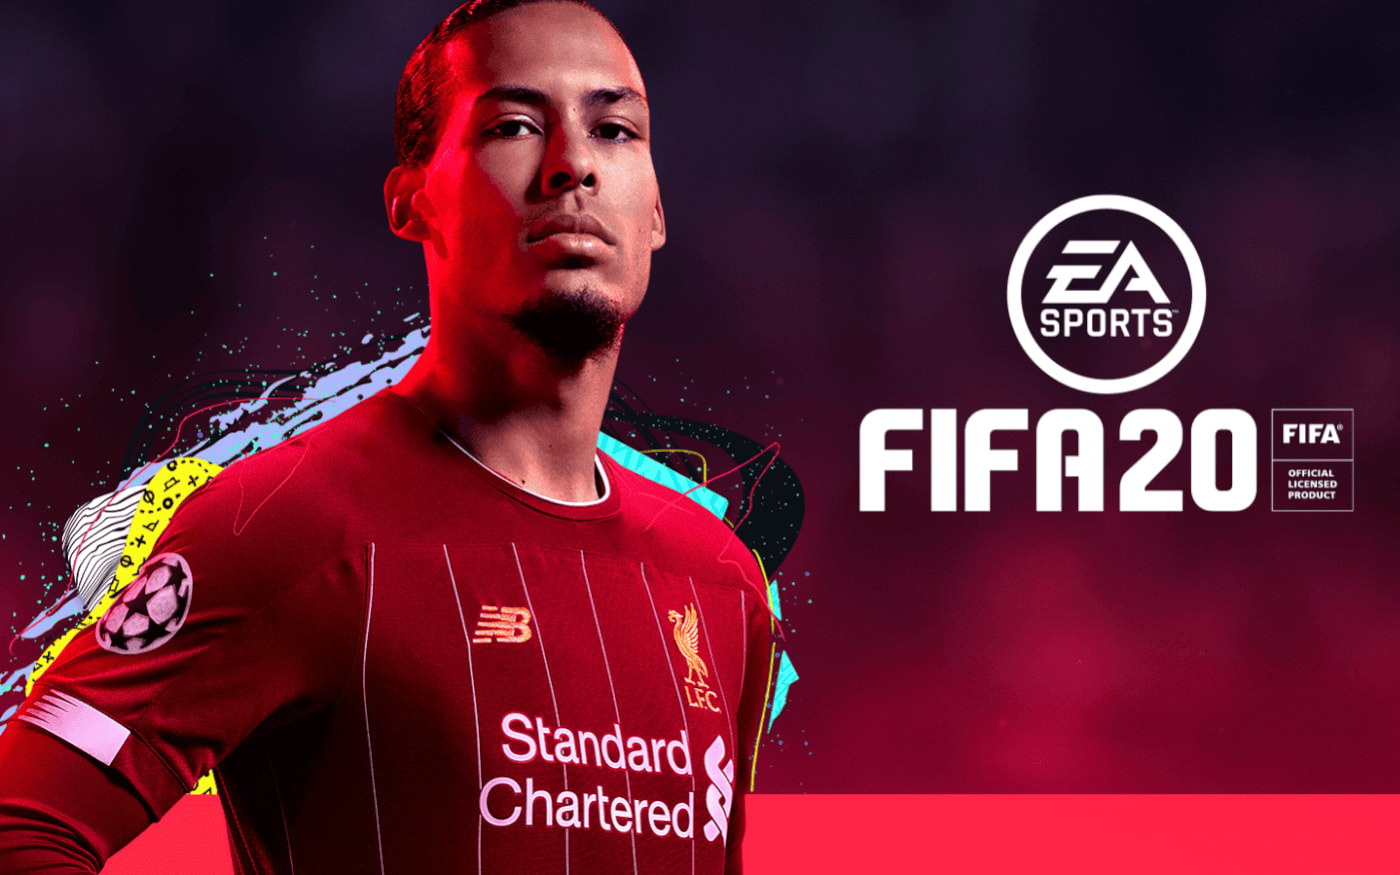 Requisitos mínimos para rodar FIFA 20 no PC